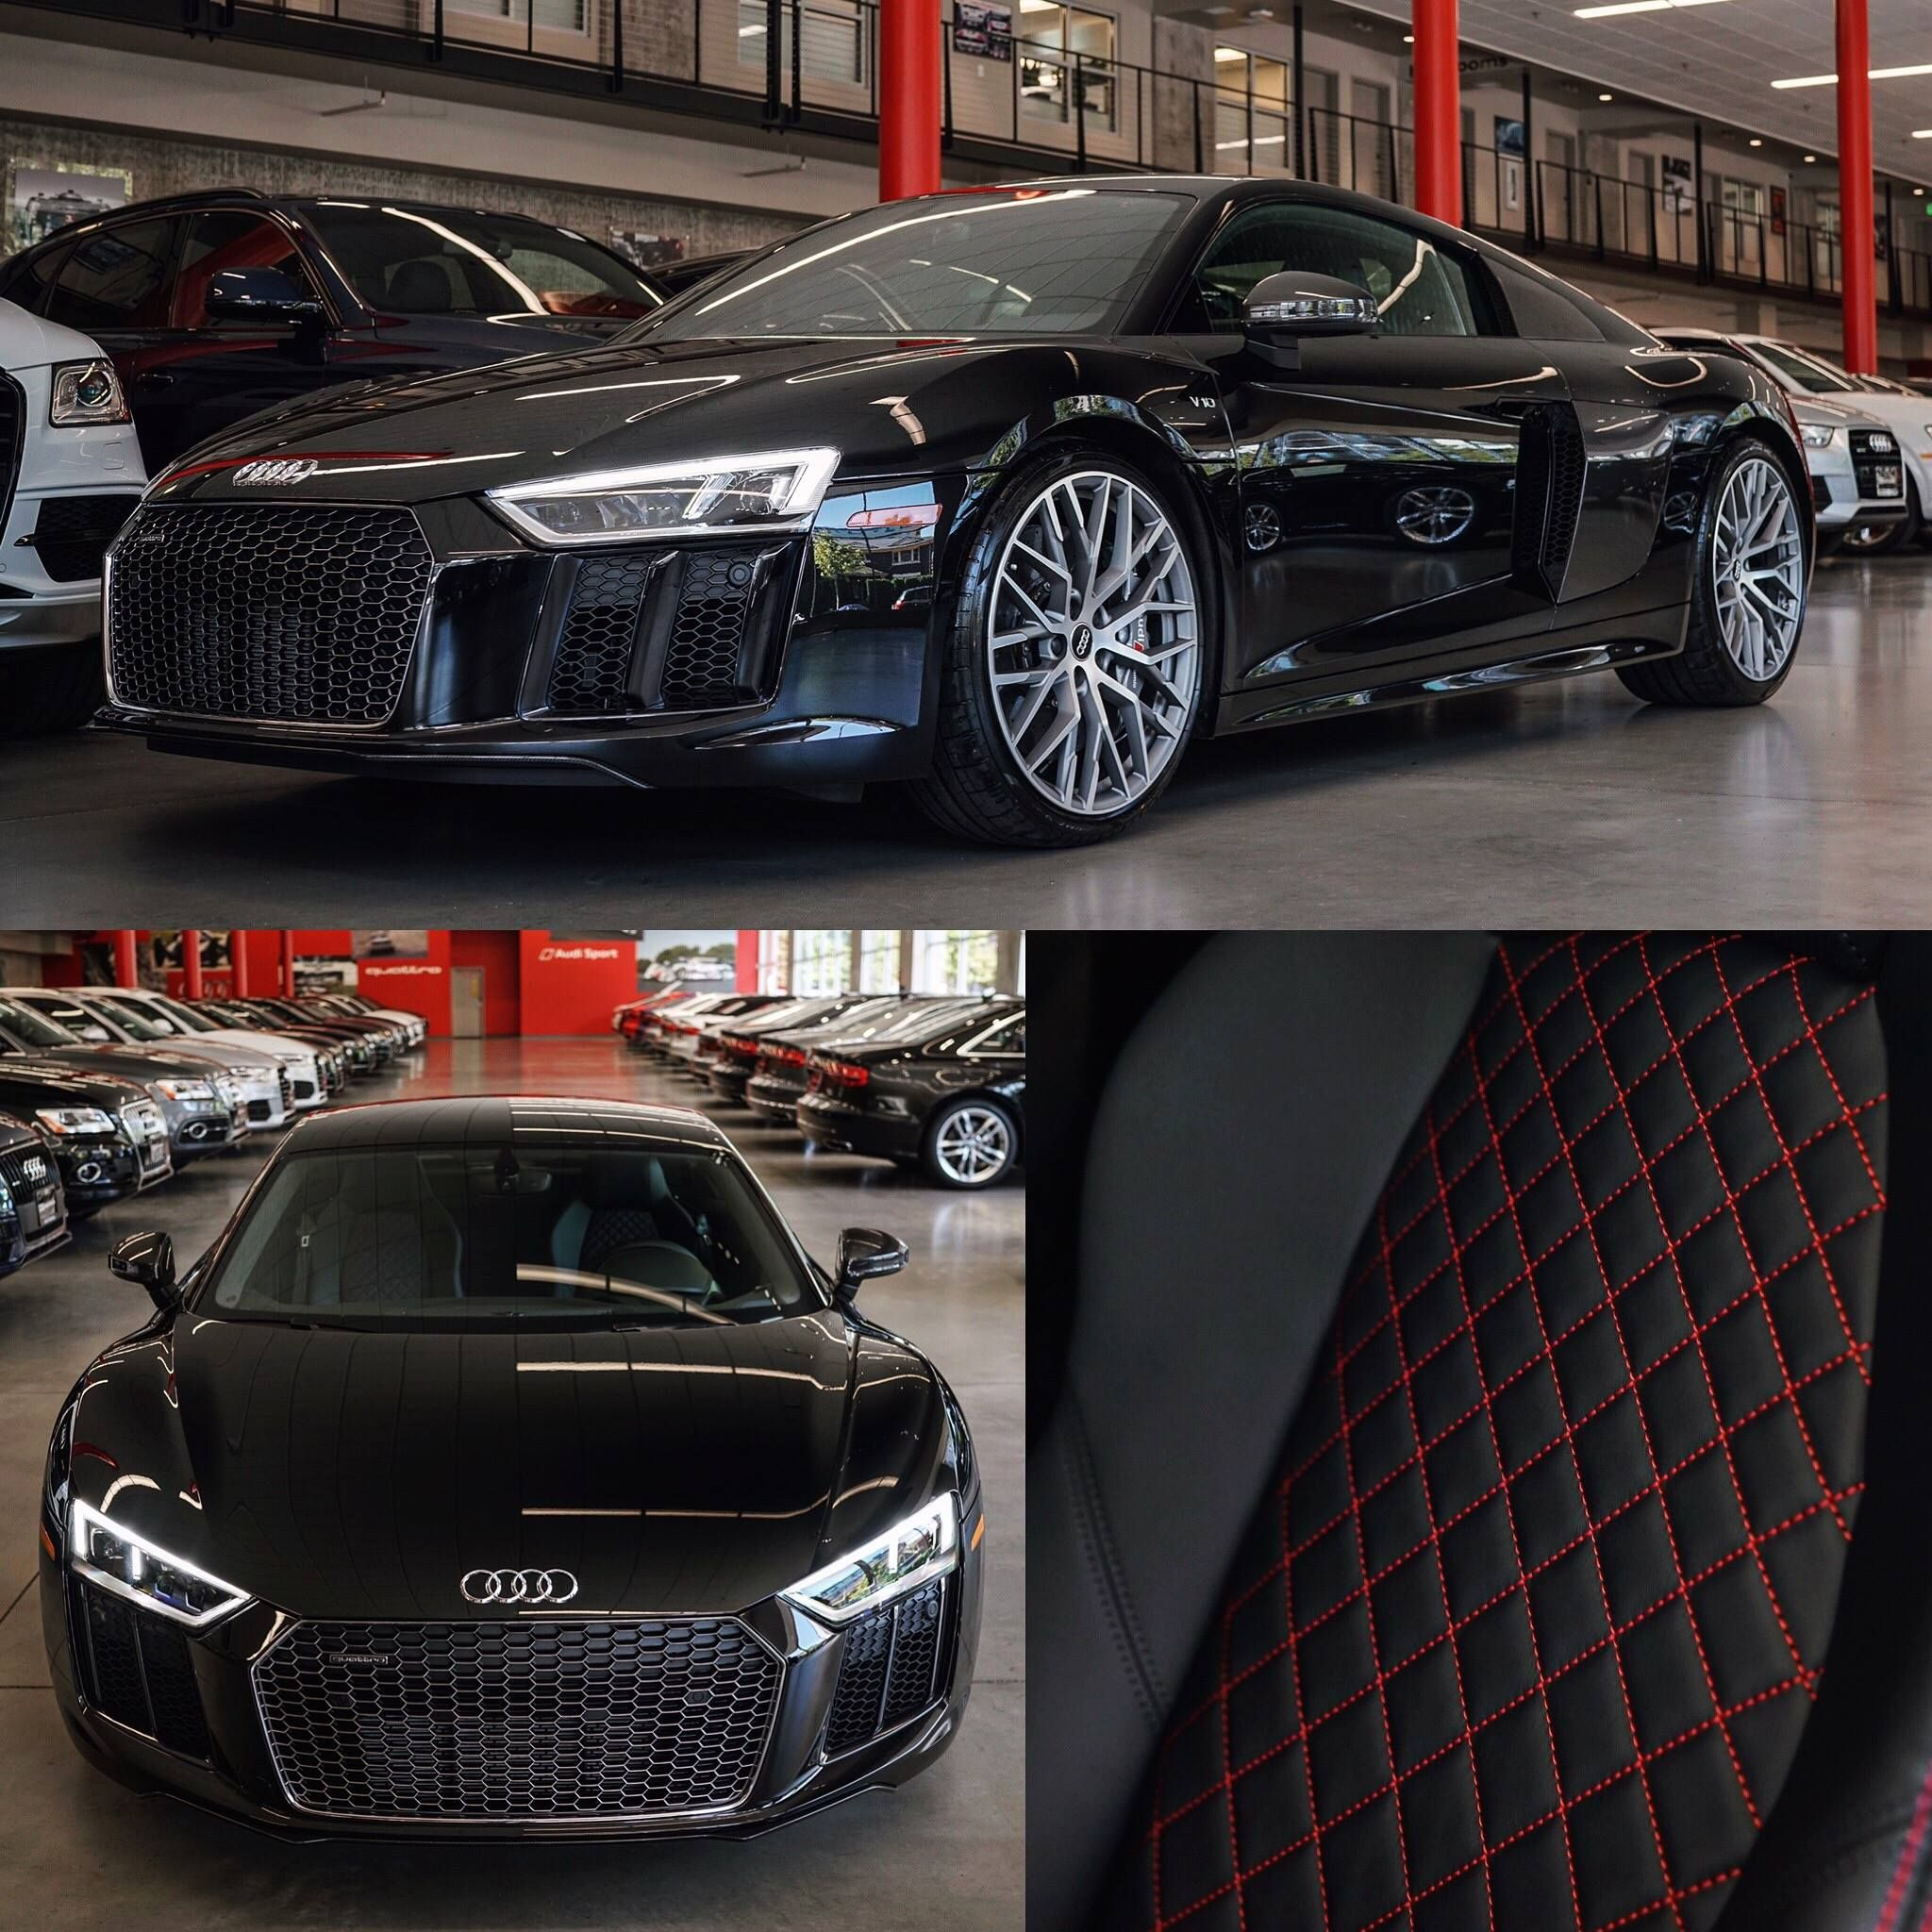 2017 R8 V10 Plus With Arras Red Stitching | Audi Seattle | #WantAnR8 |  AudiSeattle